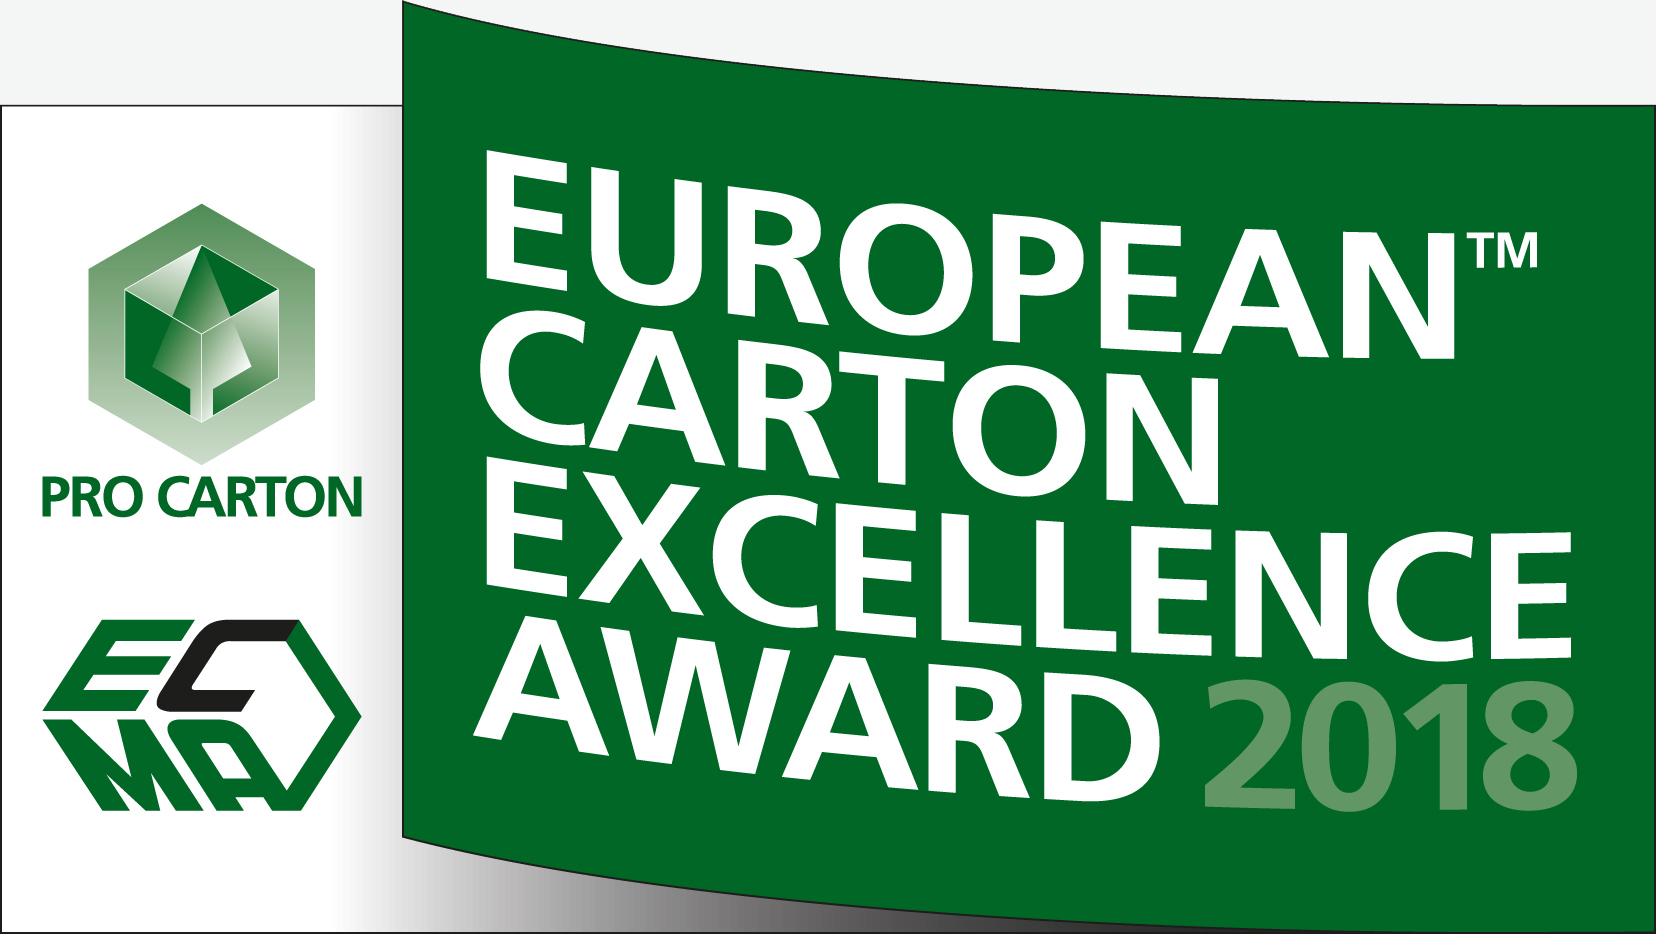 THE CARTON EXCELLENCE AWARD 2018